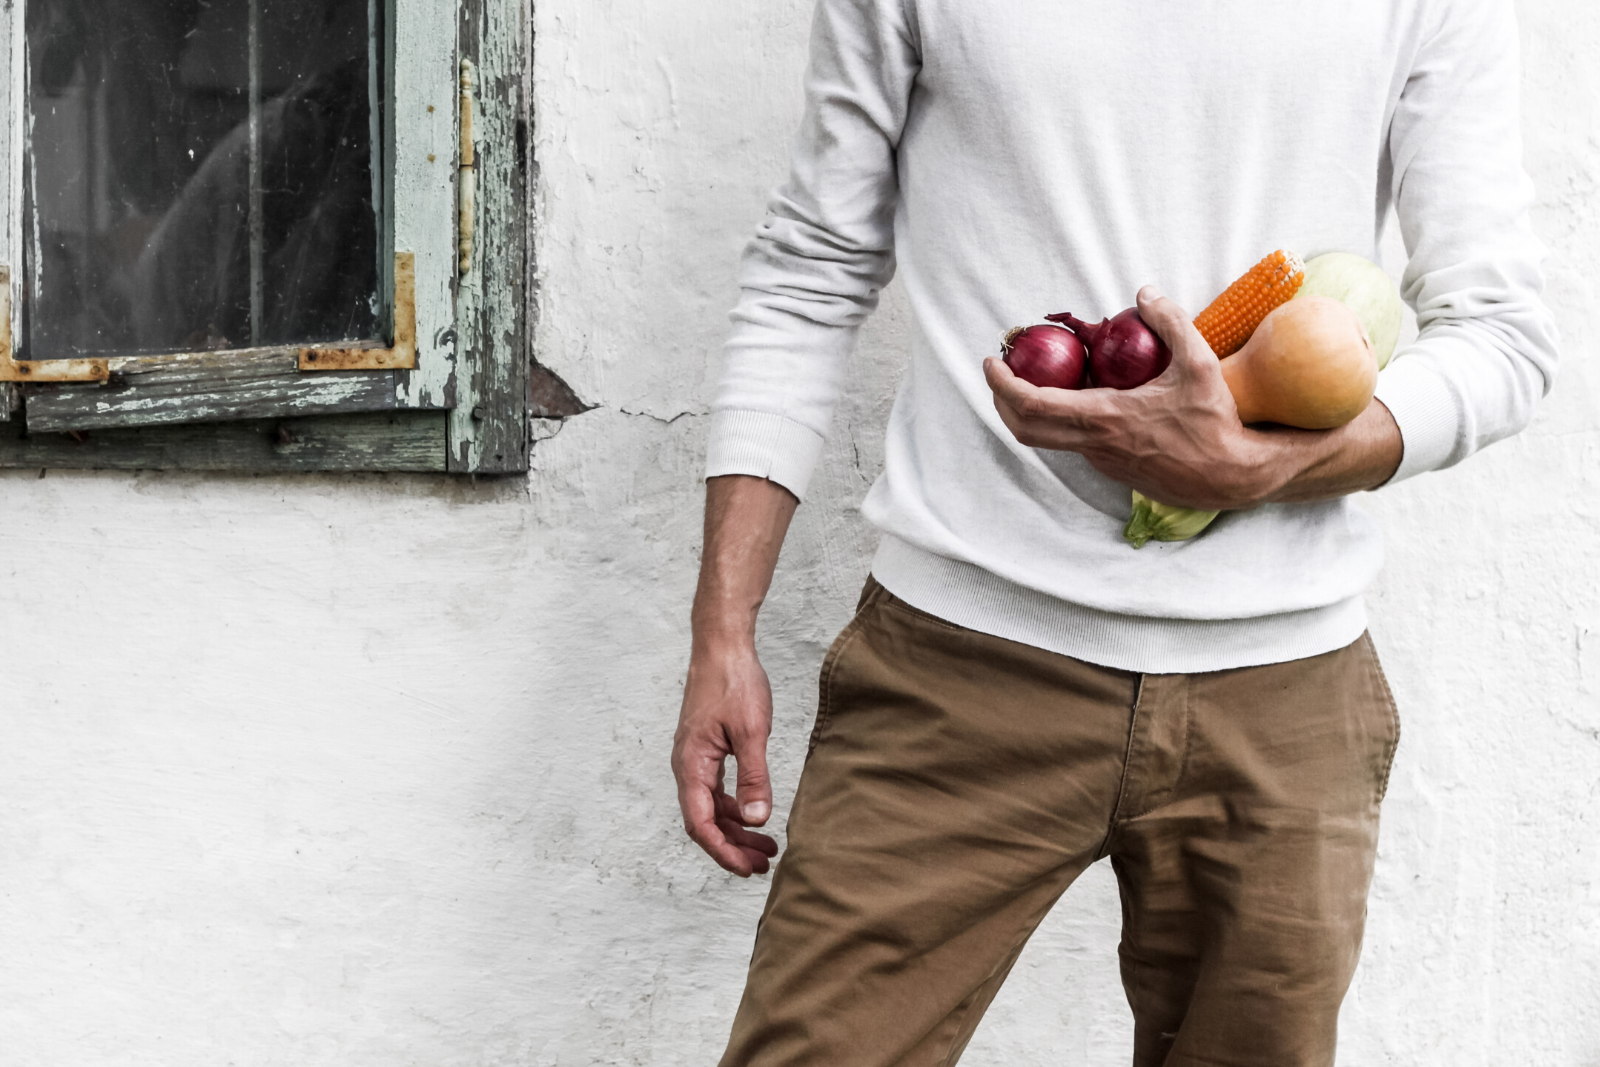 Man Holding Vegetables | 18 Popular Snack Foods That Are Actually Vegan Approved